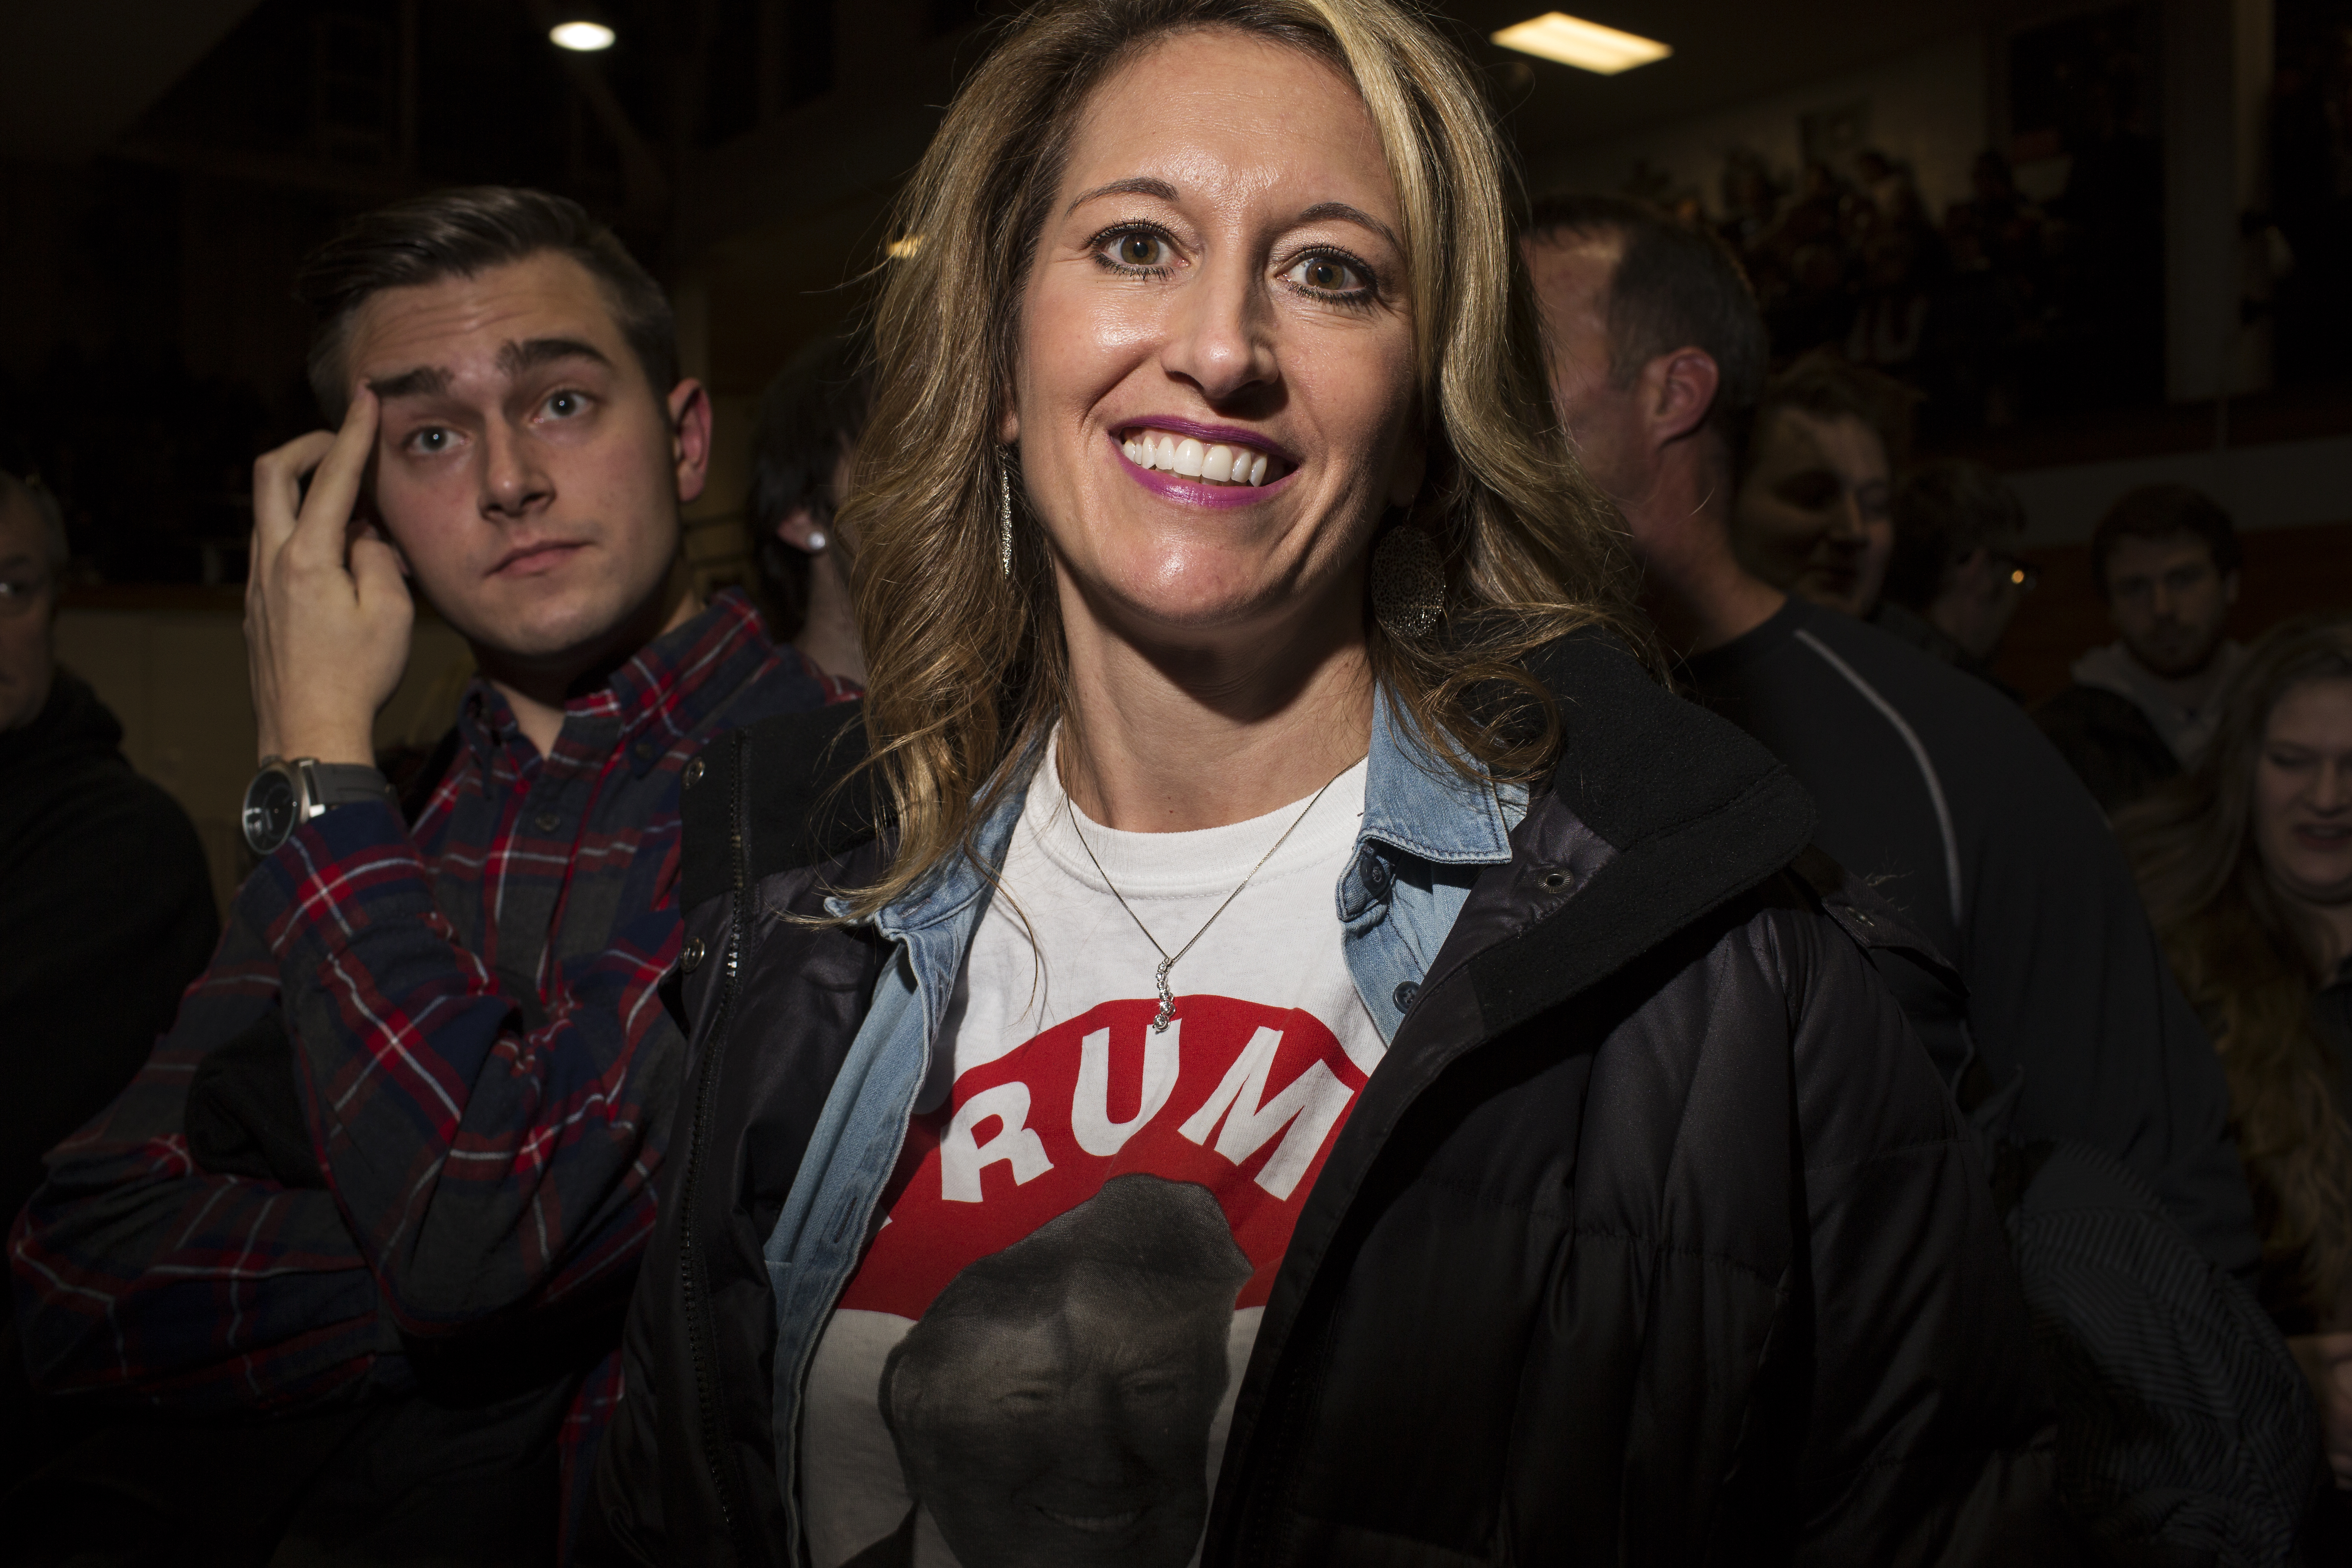 Christie Saunes waits in the crowd for the start of Donald Trump's rally at the University of Northern Iowa.